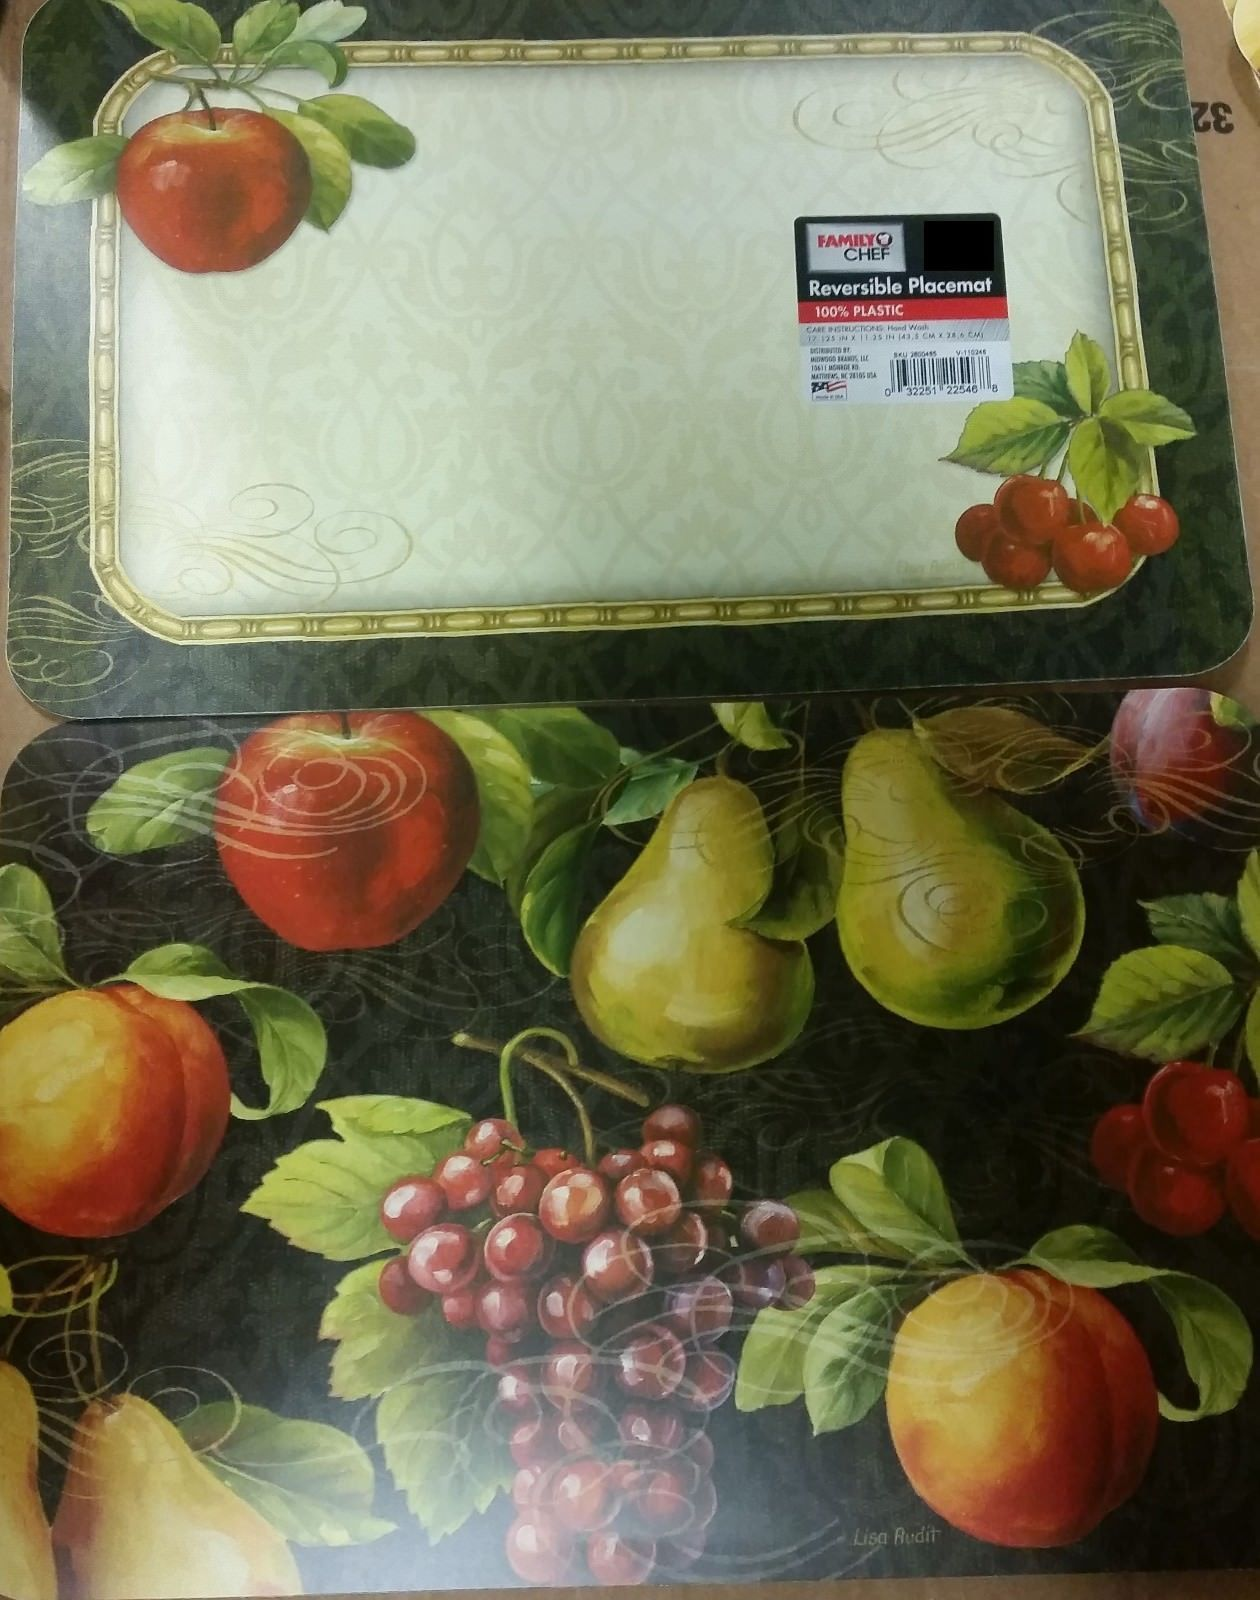 """Set of 4 REVERSIBLE NON CLEAR HARD PLACEMATS 12"""" x 18"""", FRUITS by Family Chef - $15.83"""